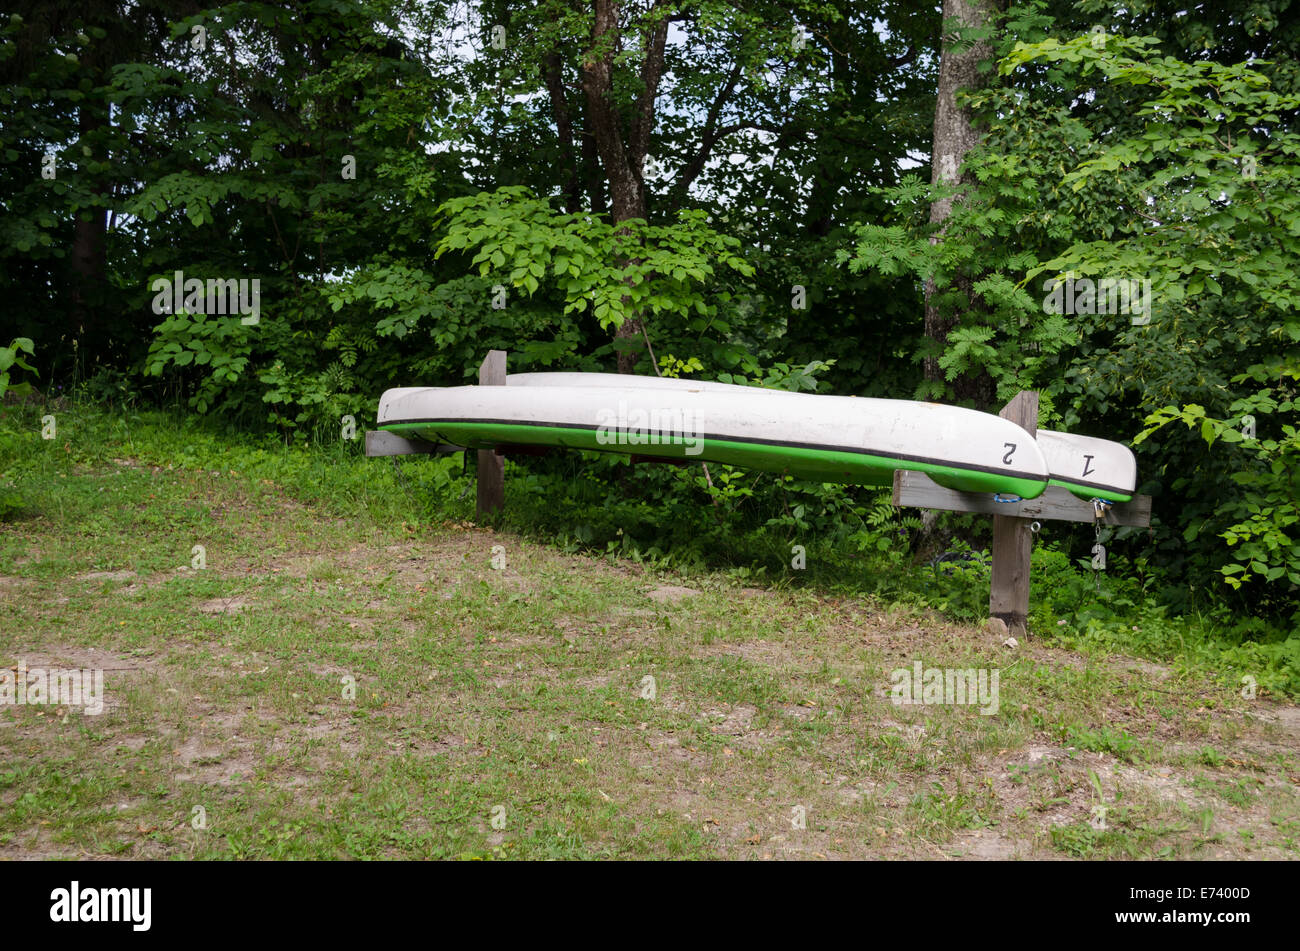 inverted two green canoes on wooden sticks dug into the ground - Stock Image